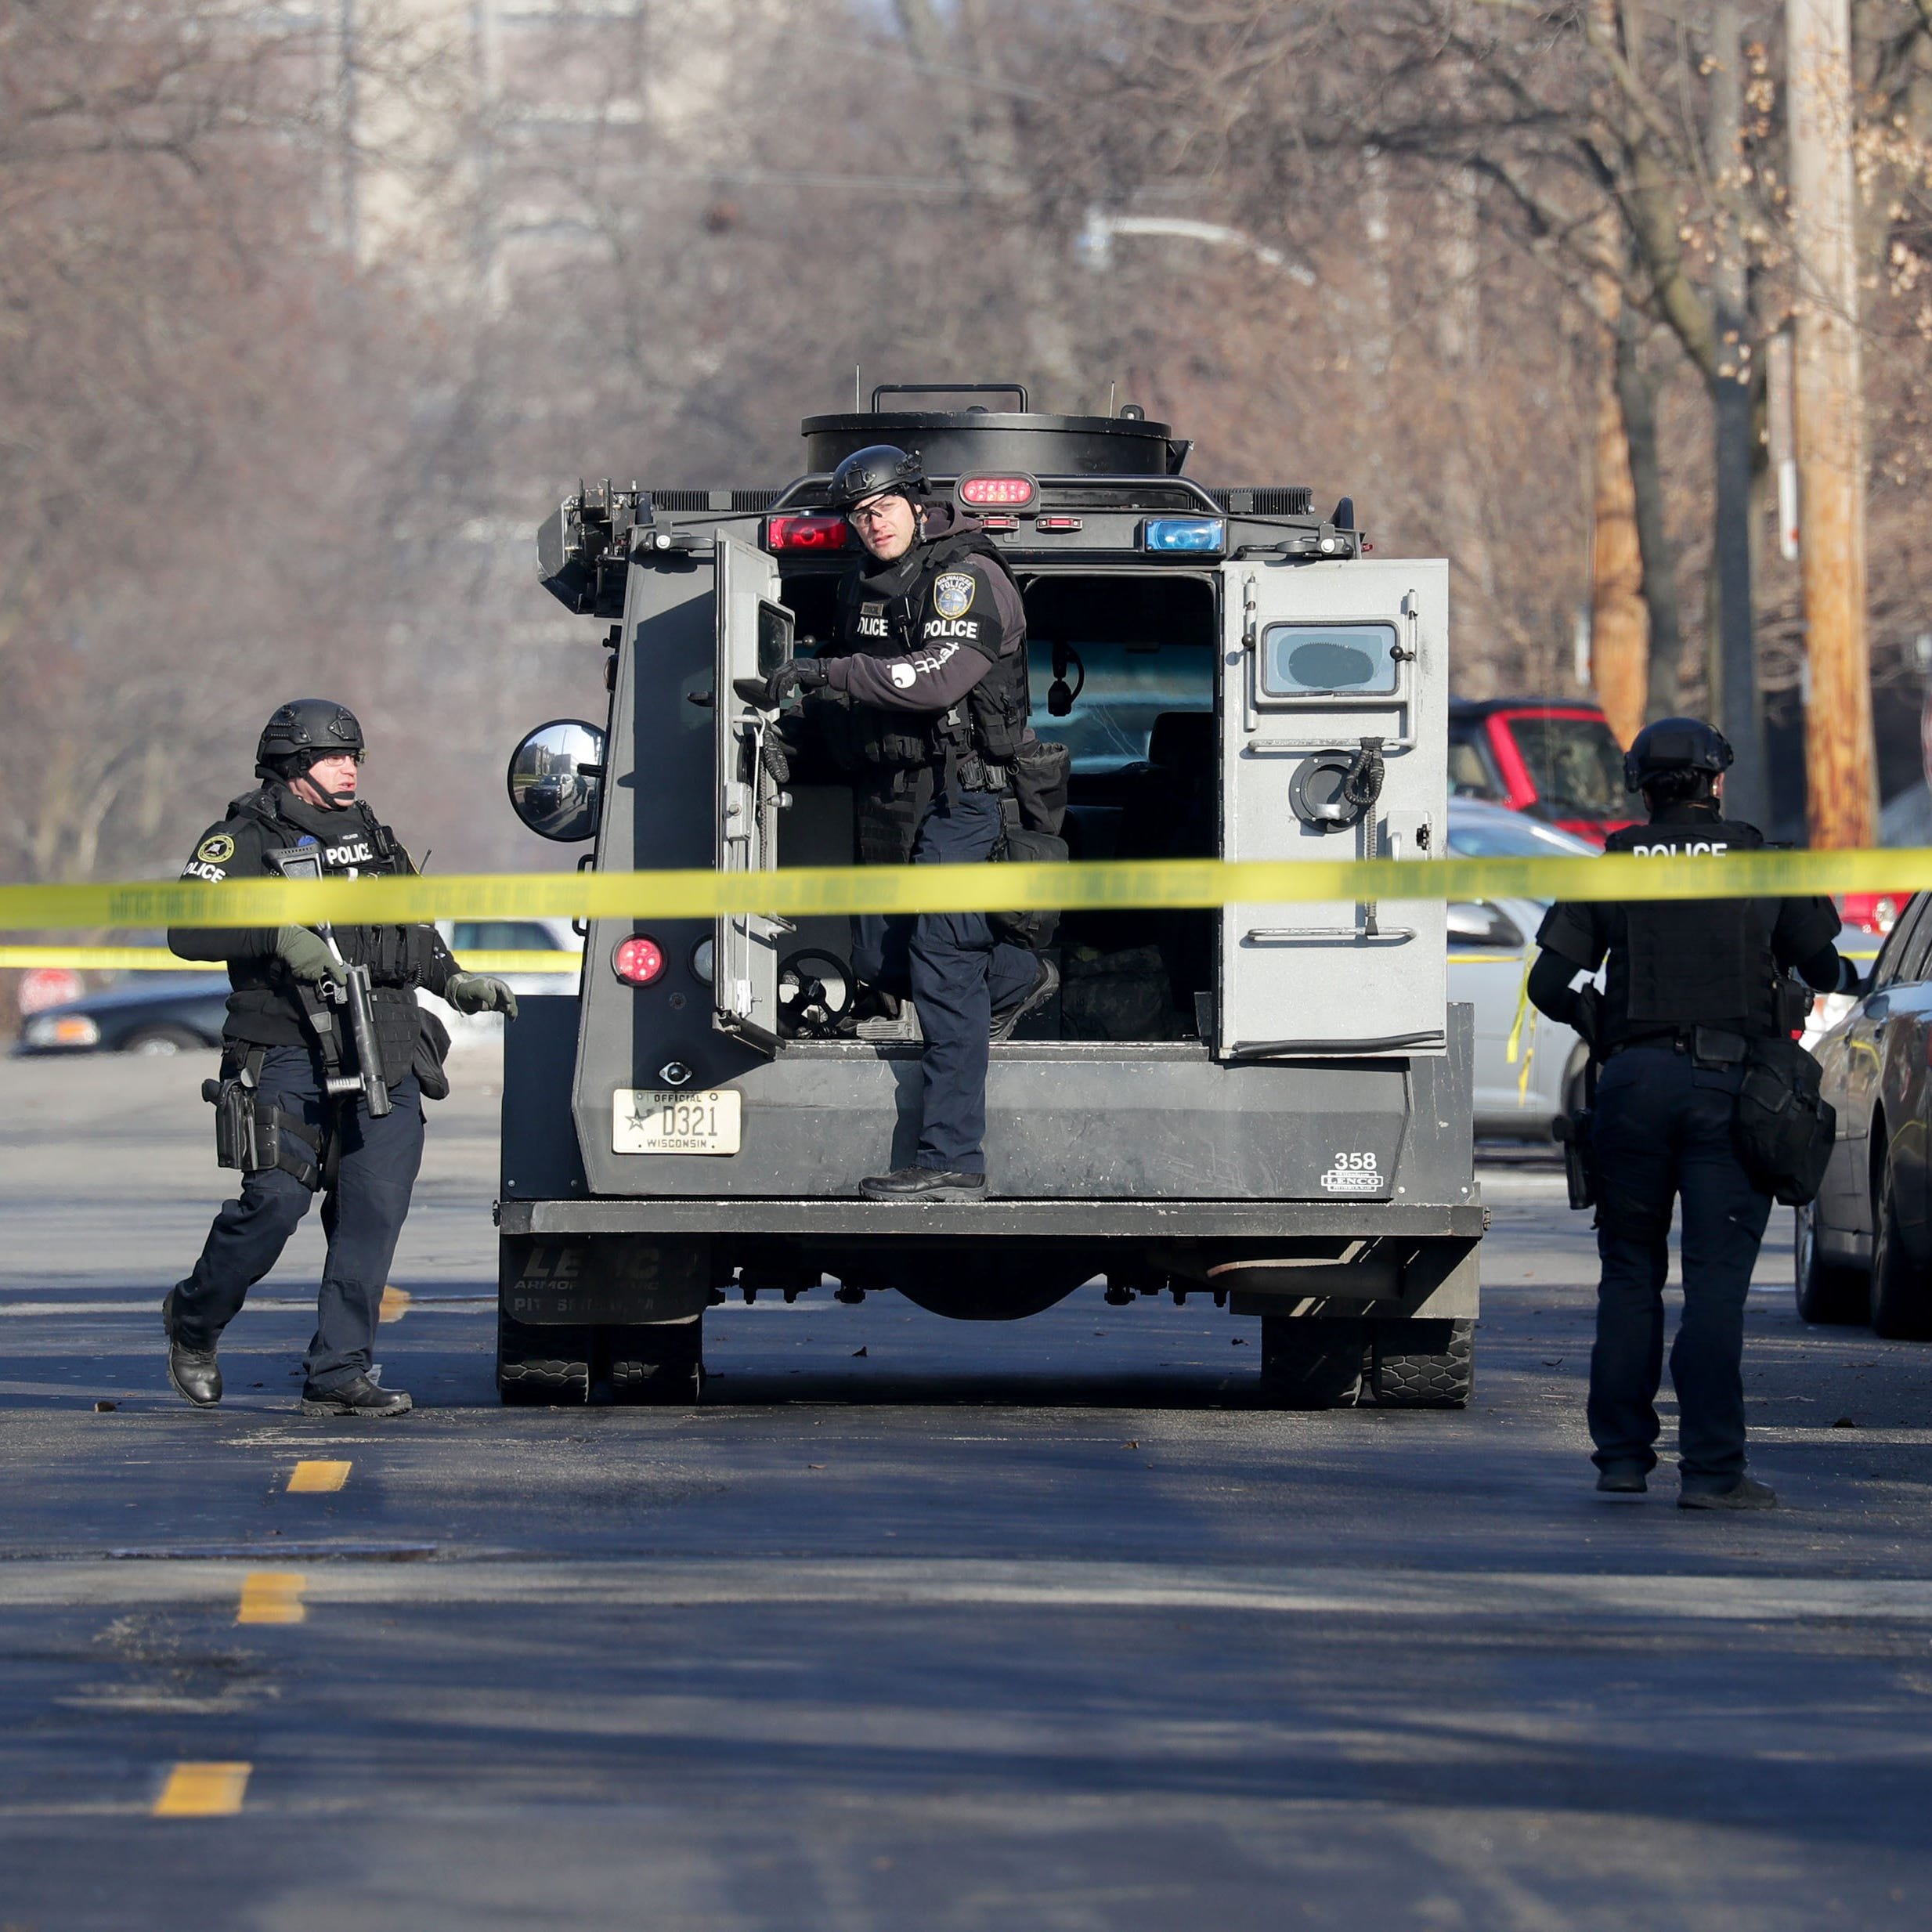 Man who threatened to shoot officers is arrested after standoff on Milwaukee's east side